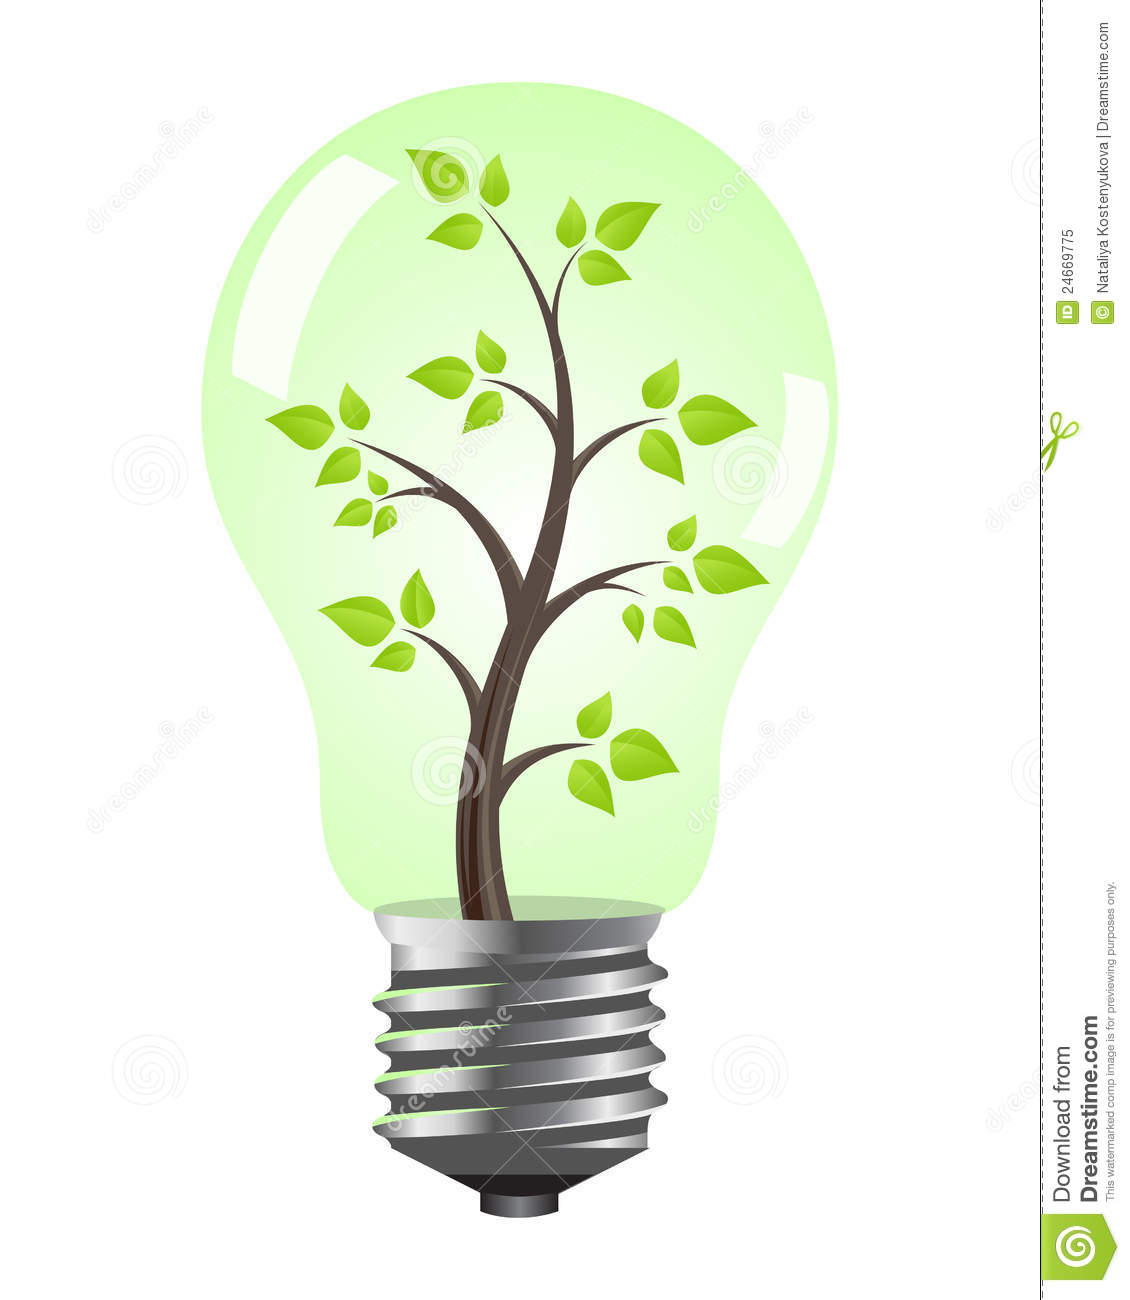 Light bulb with tree stock vector. Image of alternative ...